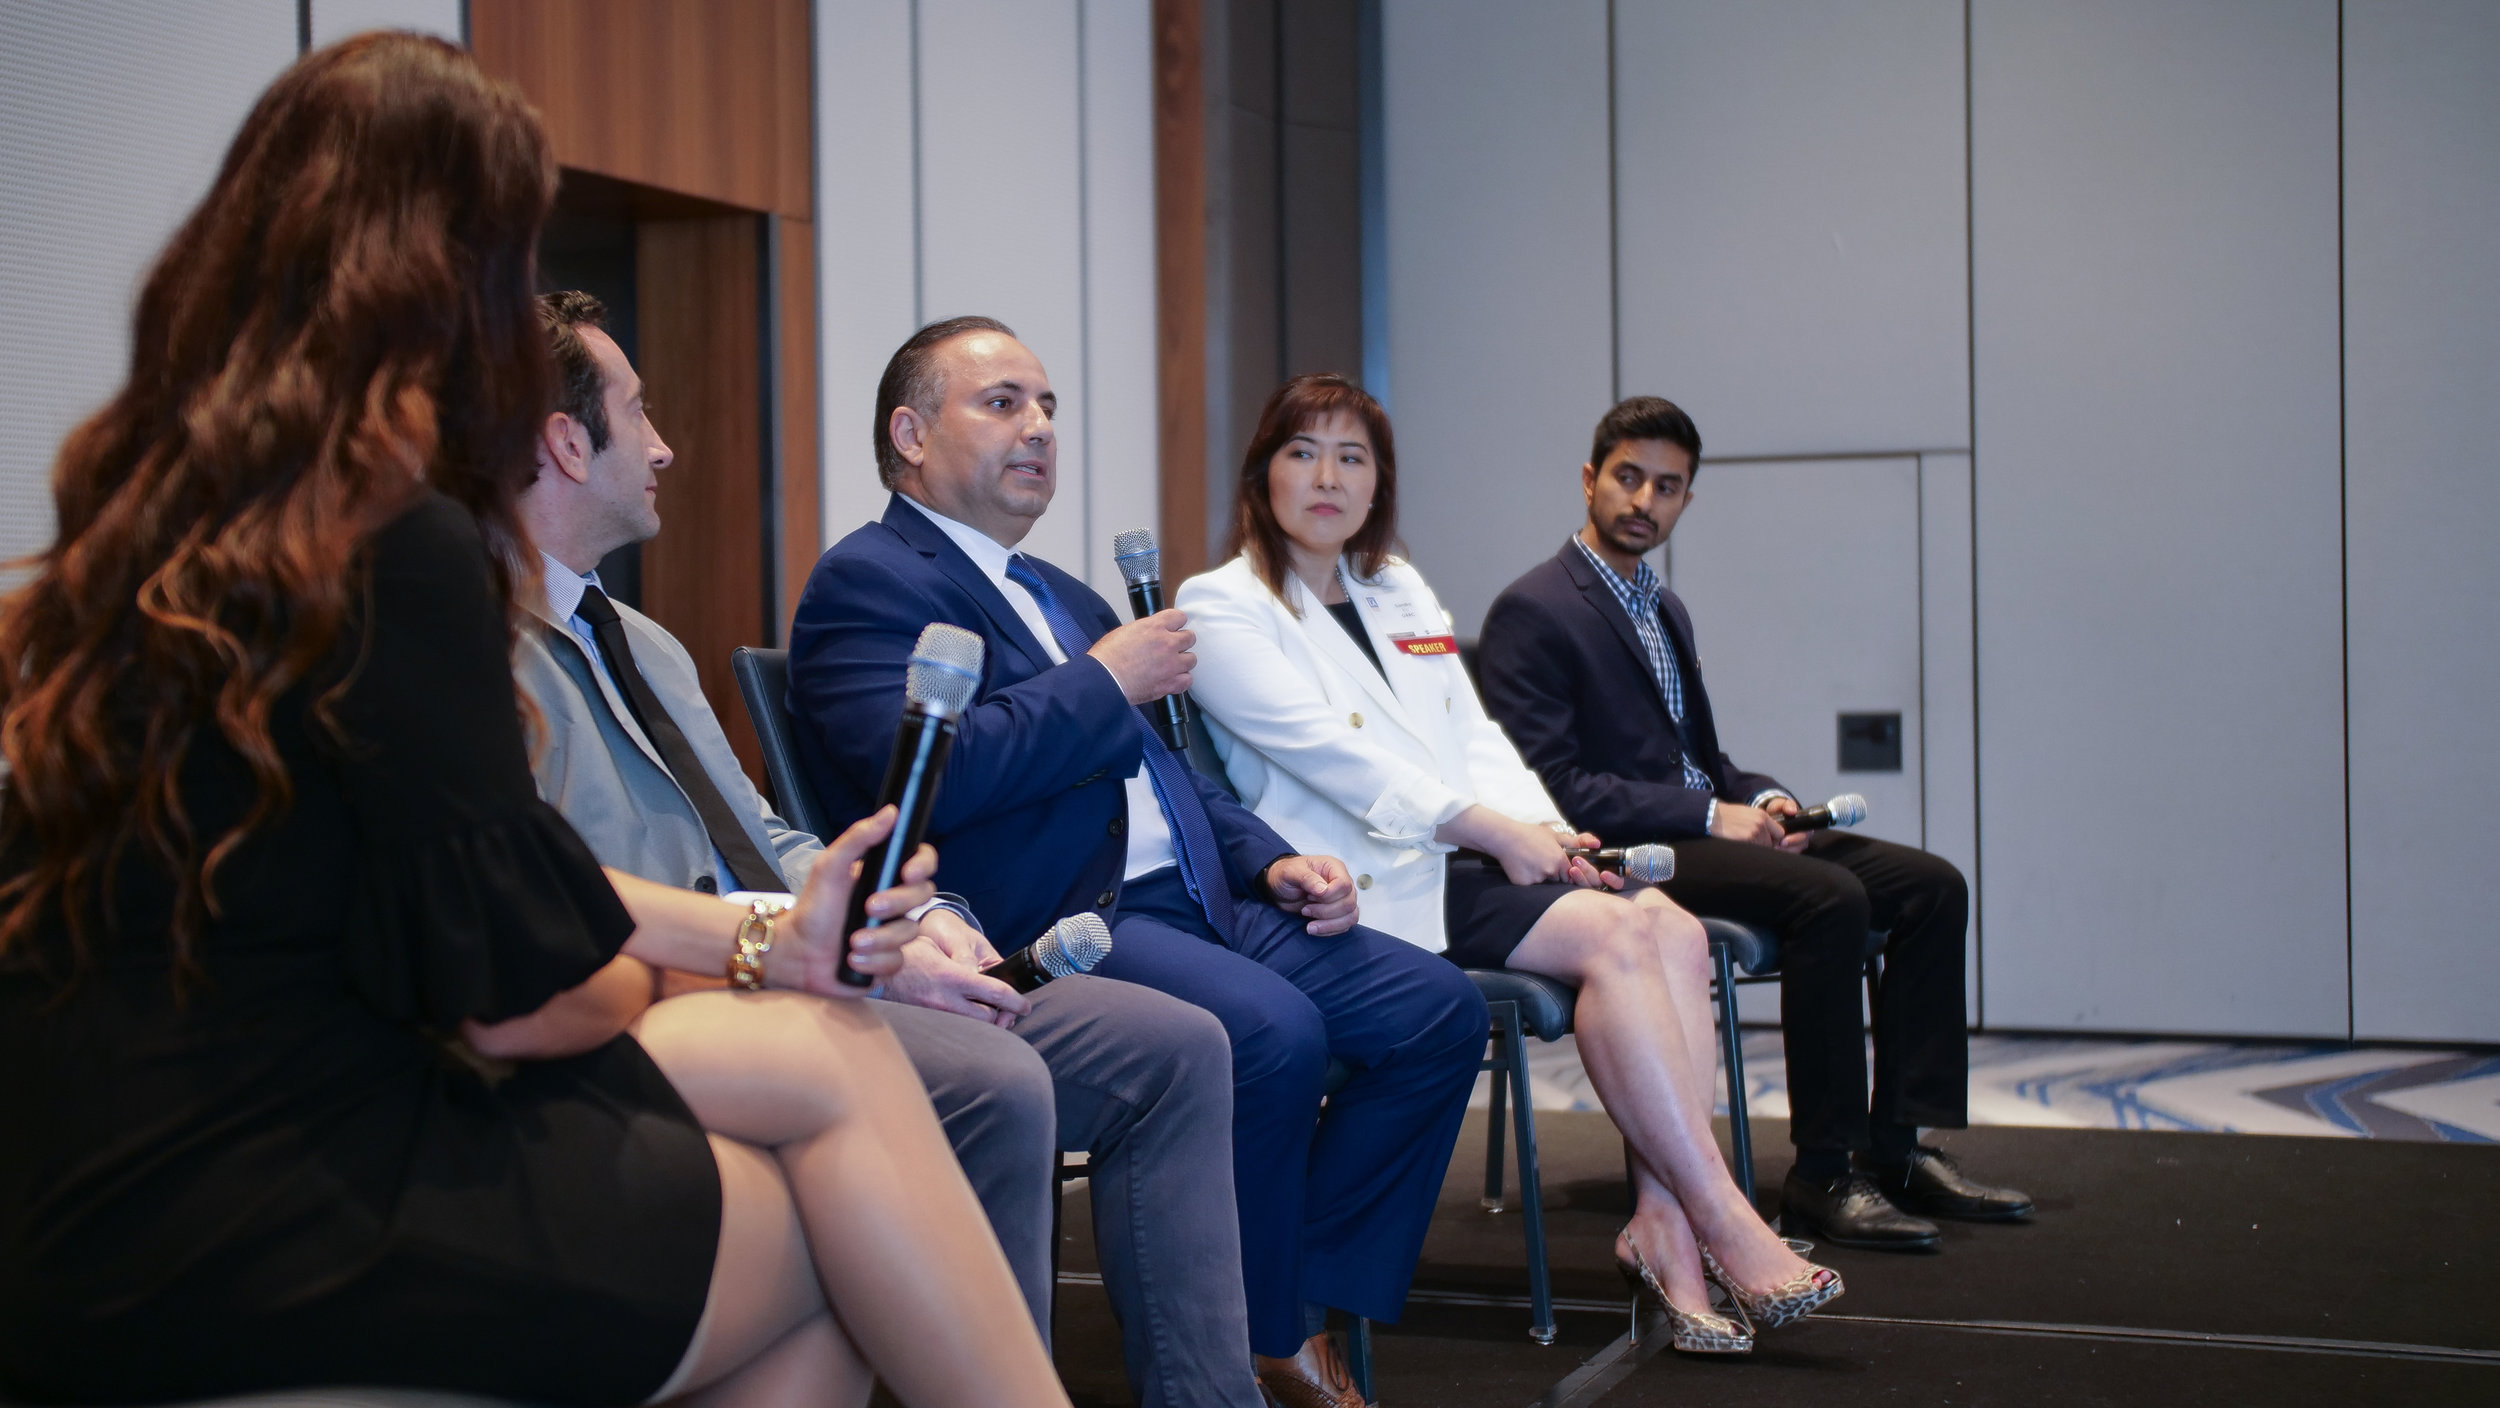 From left to right:  Co-Founder of Blockchain Lab Heidi Pease, Head of Product at Embodied, Inc Josh Anon, CEO of Beyond Limits AJ Abdallat, CEO of Global Blockchain Business Council Sandra Ro, CEO of First Resonance Karan Talati